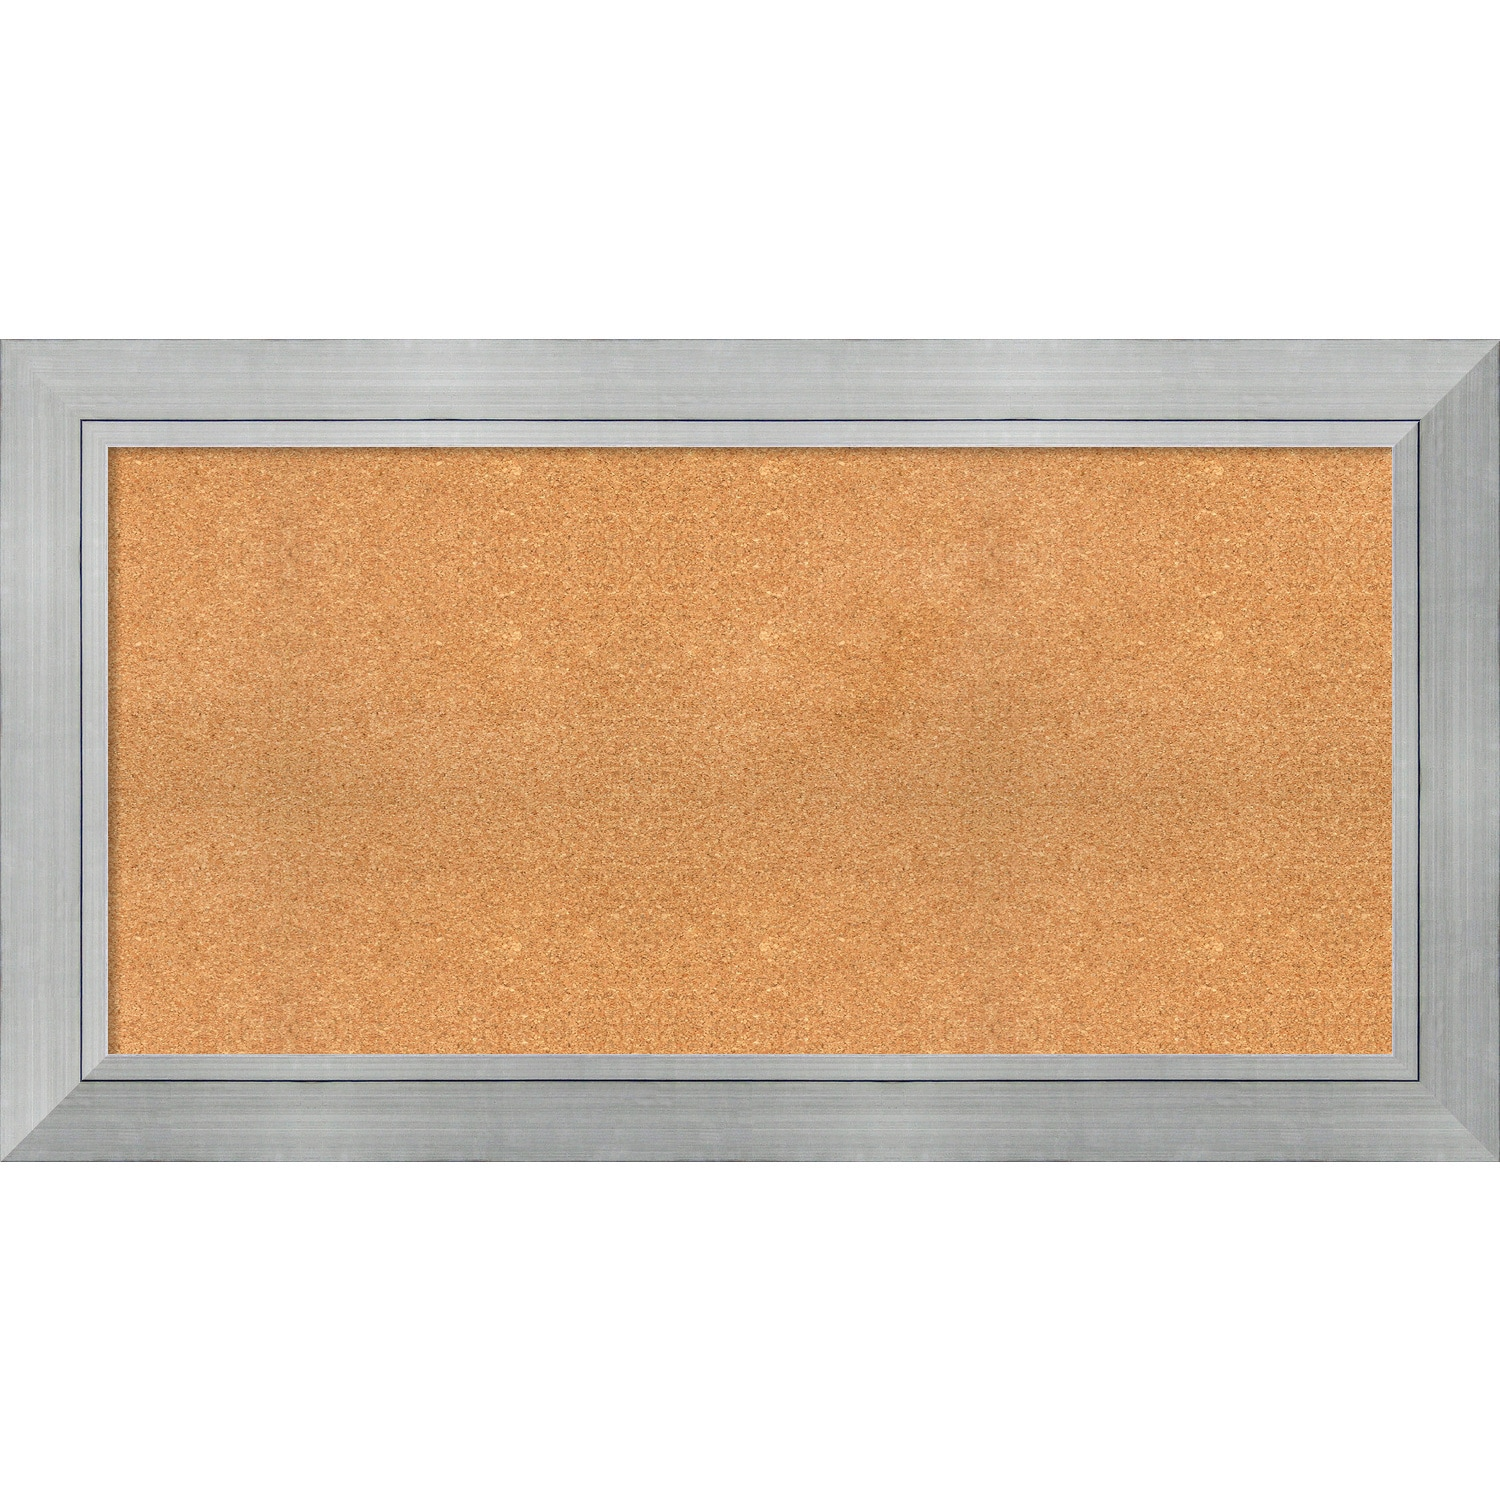 Shop Framed Cork Board, Choose Your Custom Size, Romano Silver Wood on house construction, house roof, house exterior, house layout, house rendering, house building, house clip art, house maps, house painting, house design, house elevations, house foundation, house blueprints, house structure, house drawings, house styles, house types, house framing, house models, house plants,